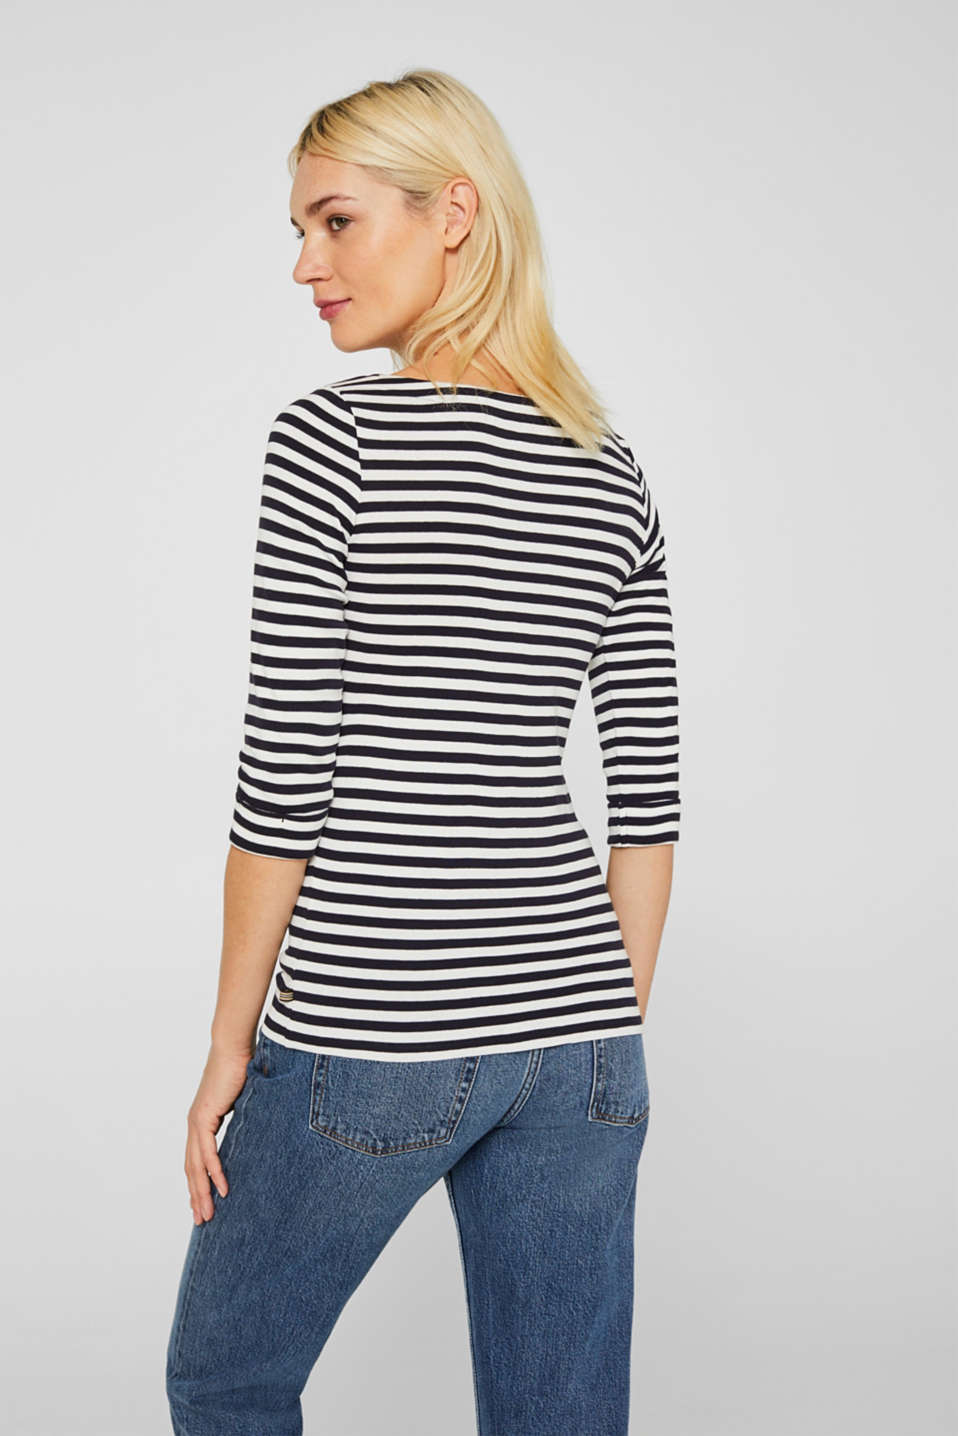 Bateau neckline top, 100% cotton, NAVY, detail image number 3